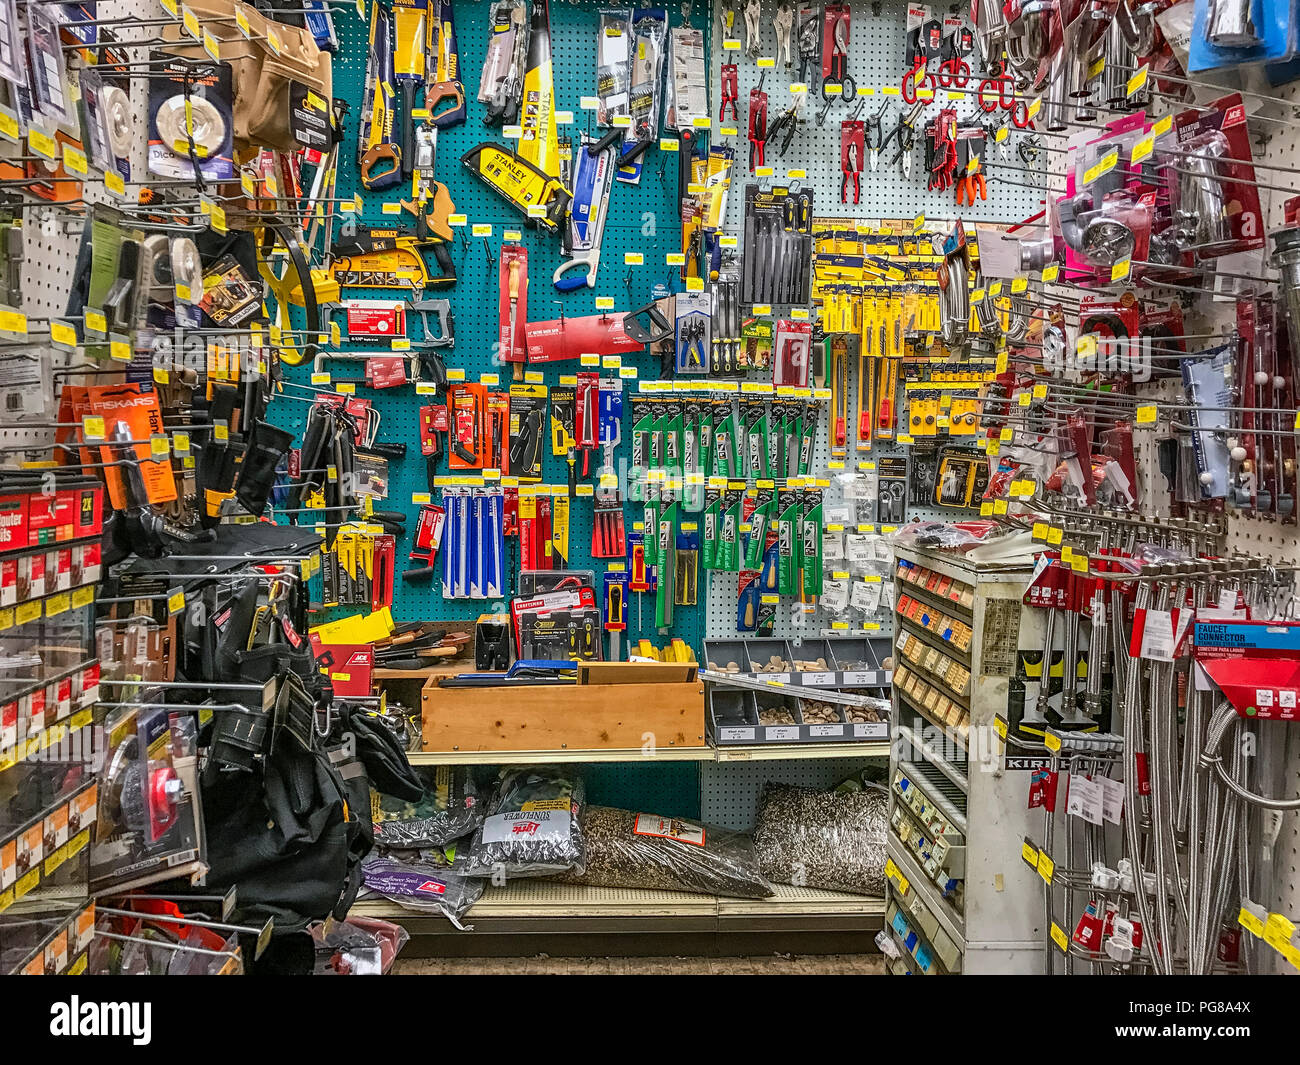 Product display in a hardware store. - Stock Image